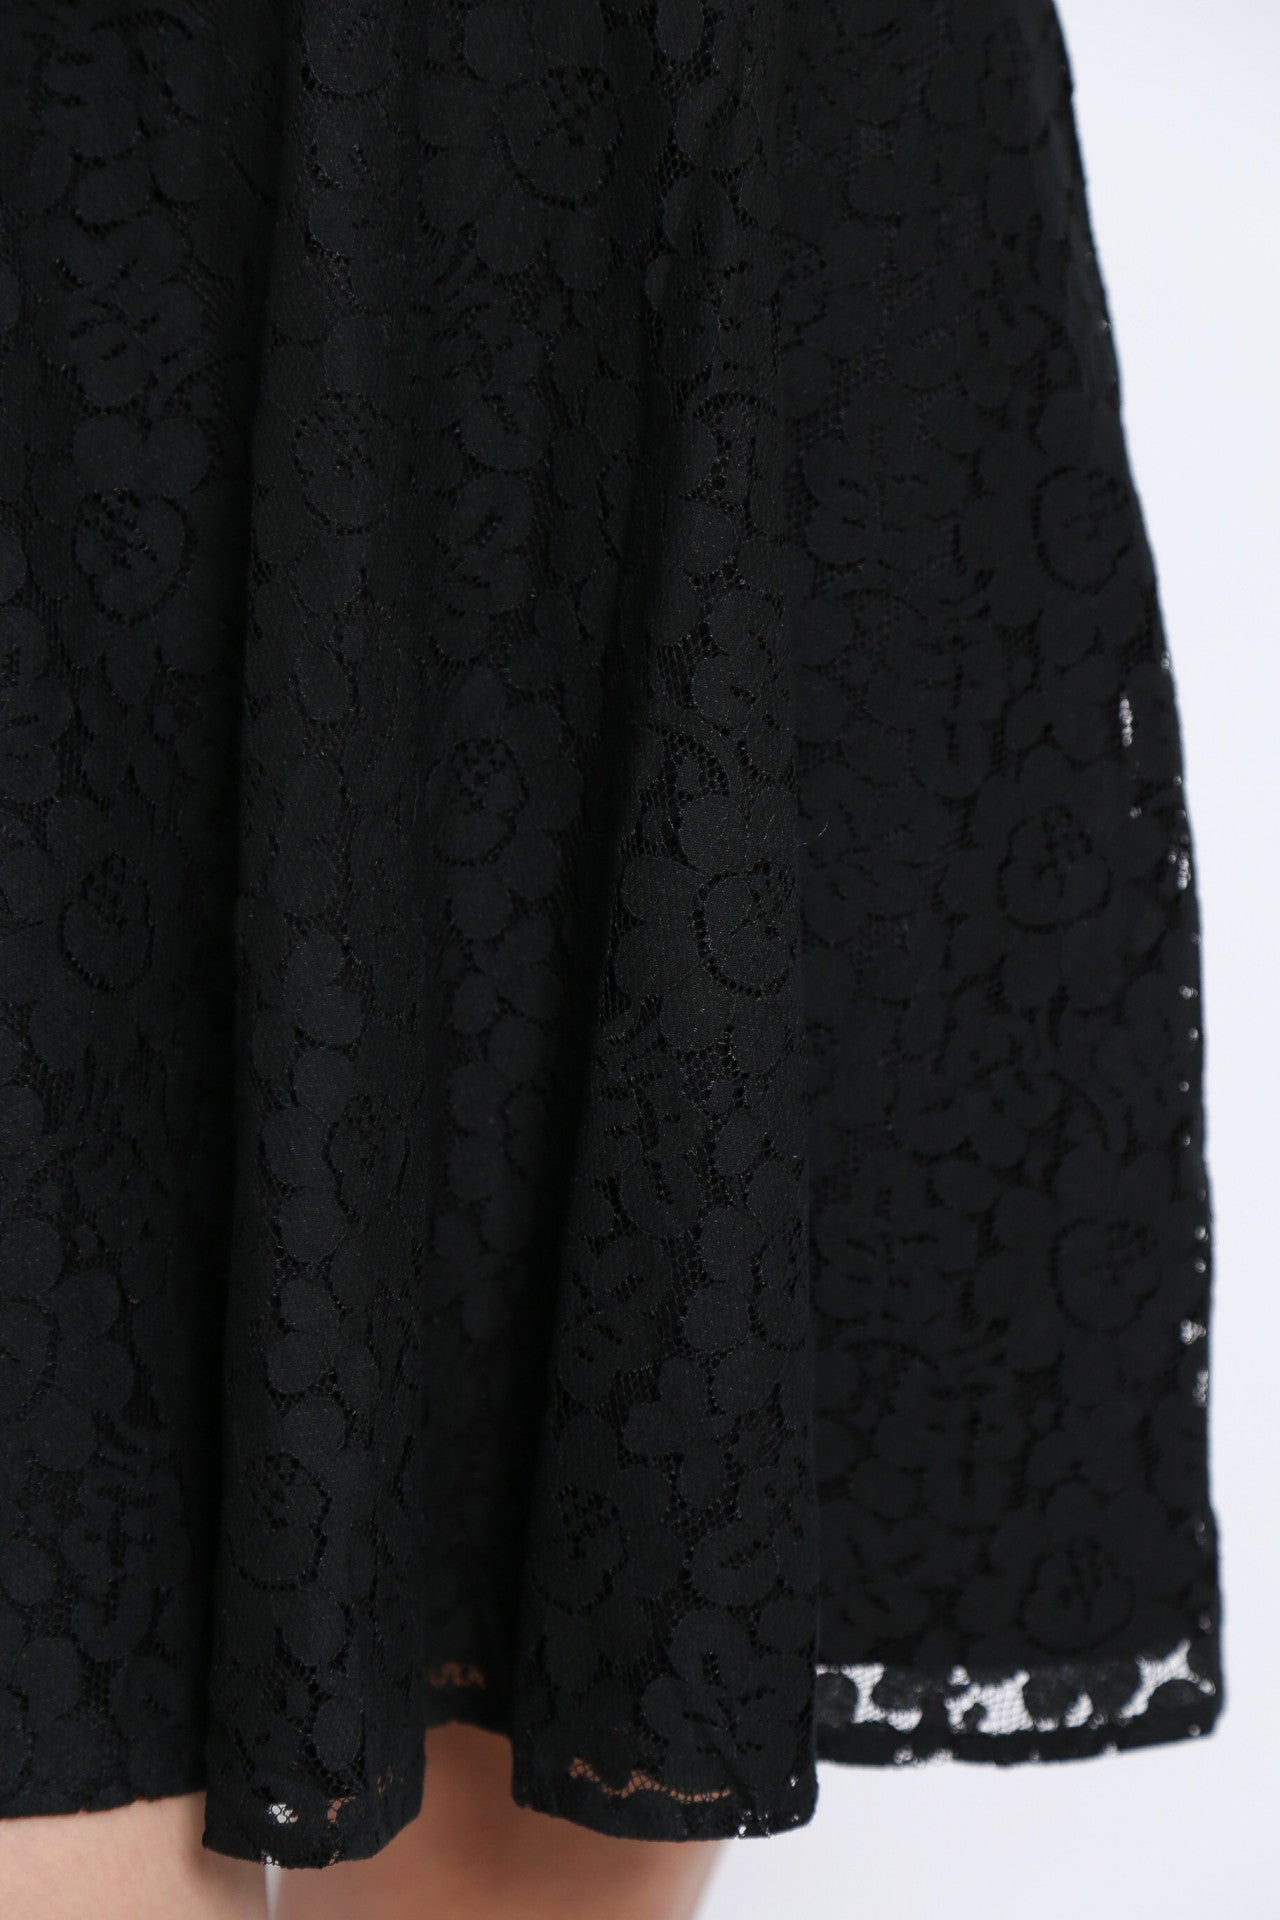 *TOPAZ* (PREMIUM) VALENTINO LACE DRESS IN BLACK - TOPAZETTE